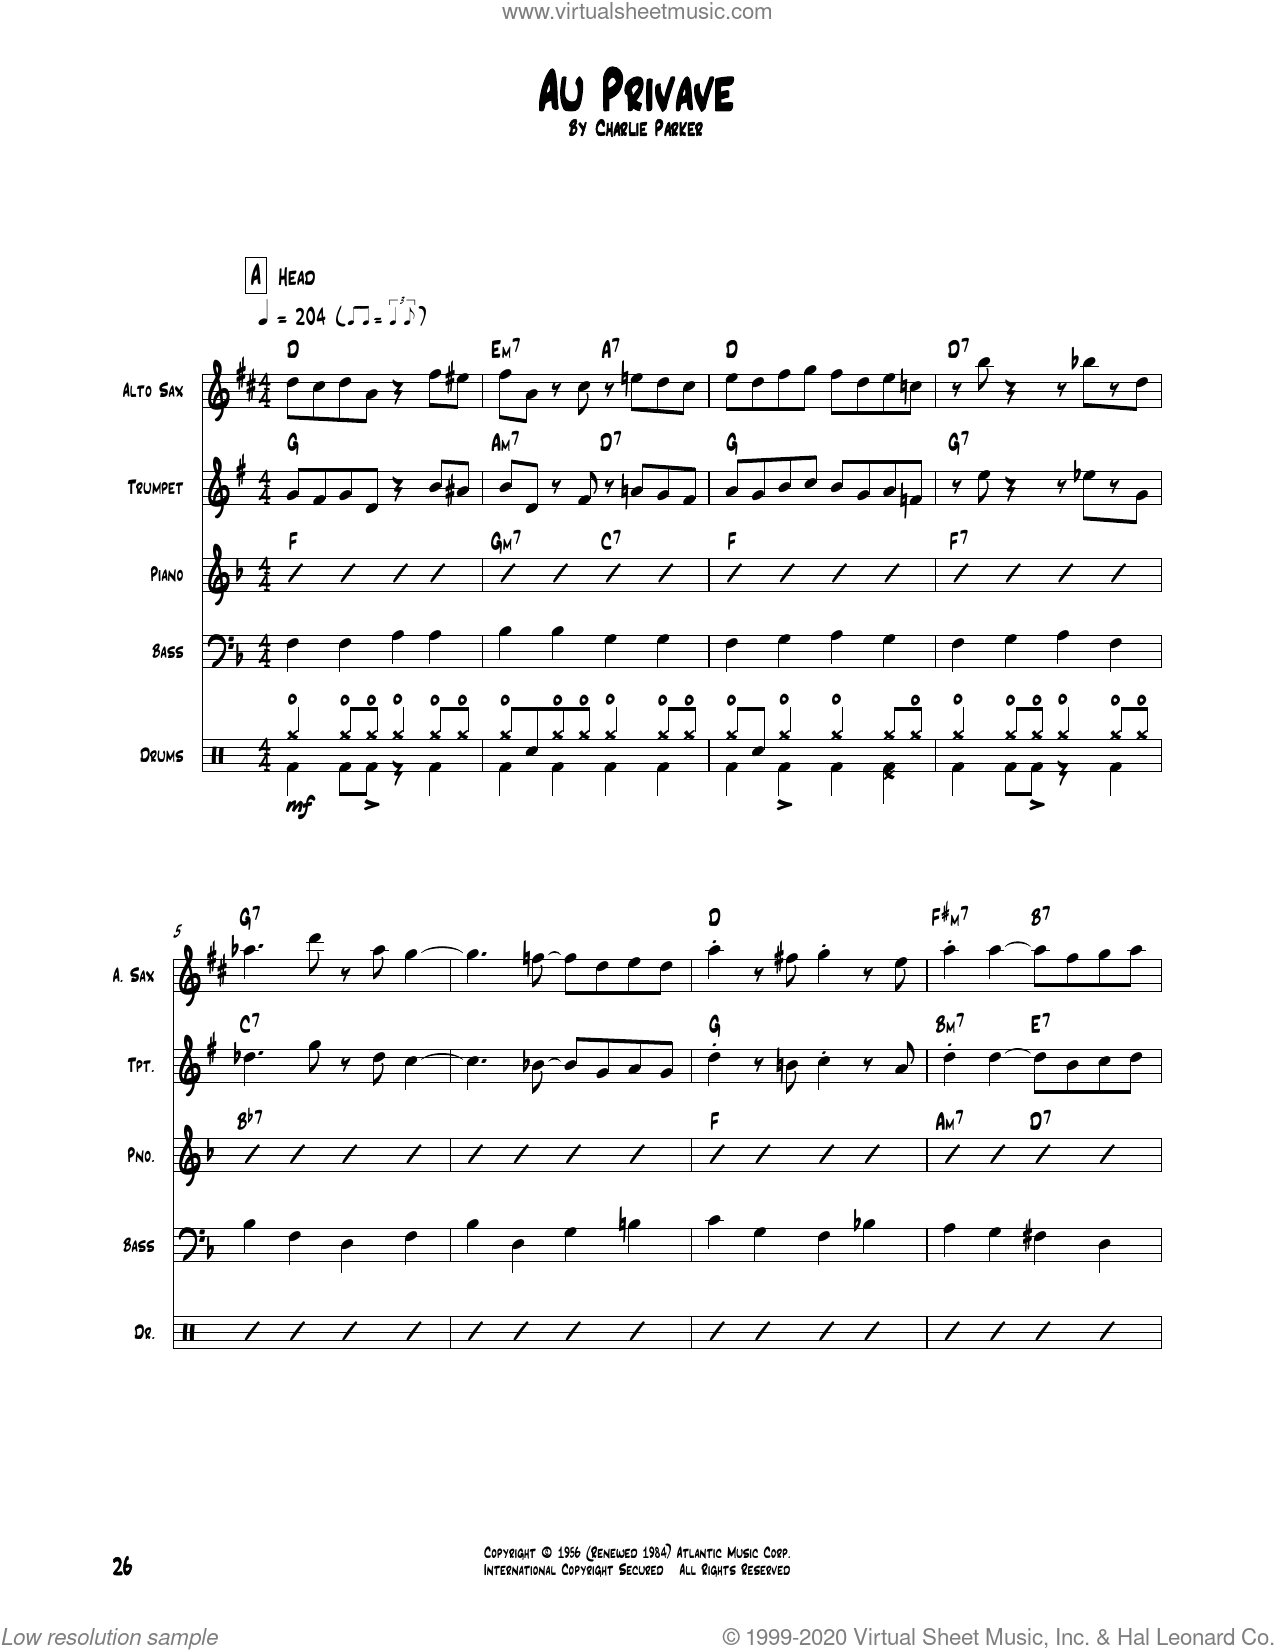 Au Privave sheet music for chamber ensemble (Transcribed Score) by Charlie Parker, intermediate skill level